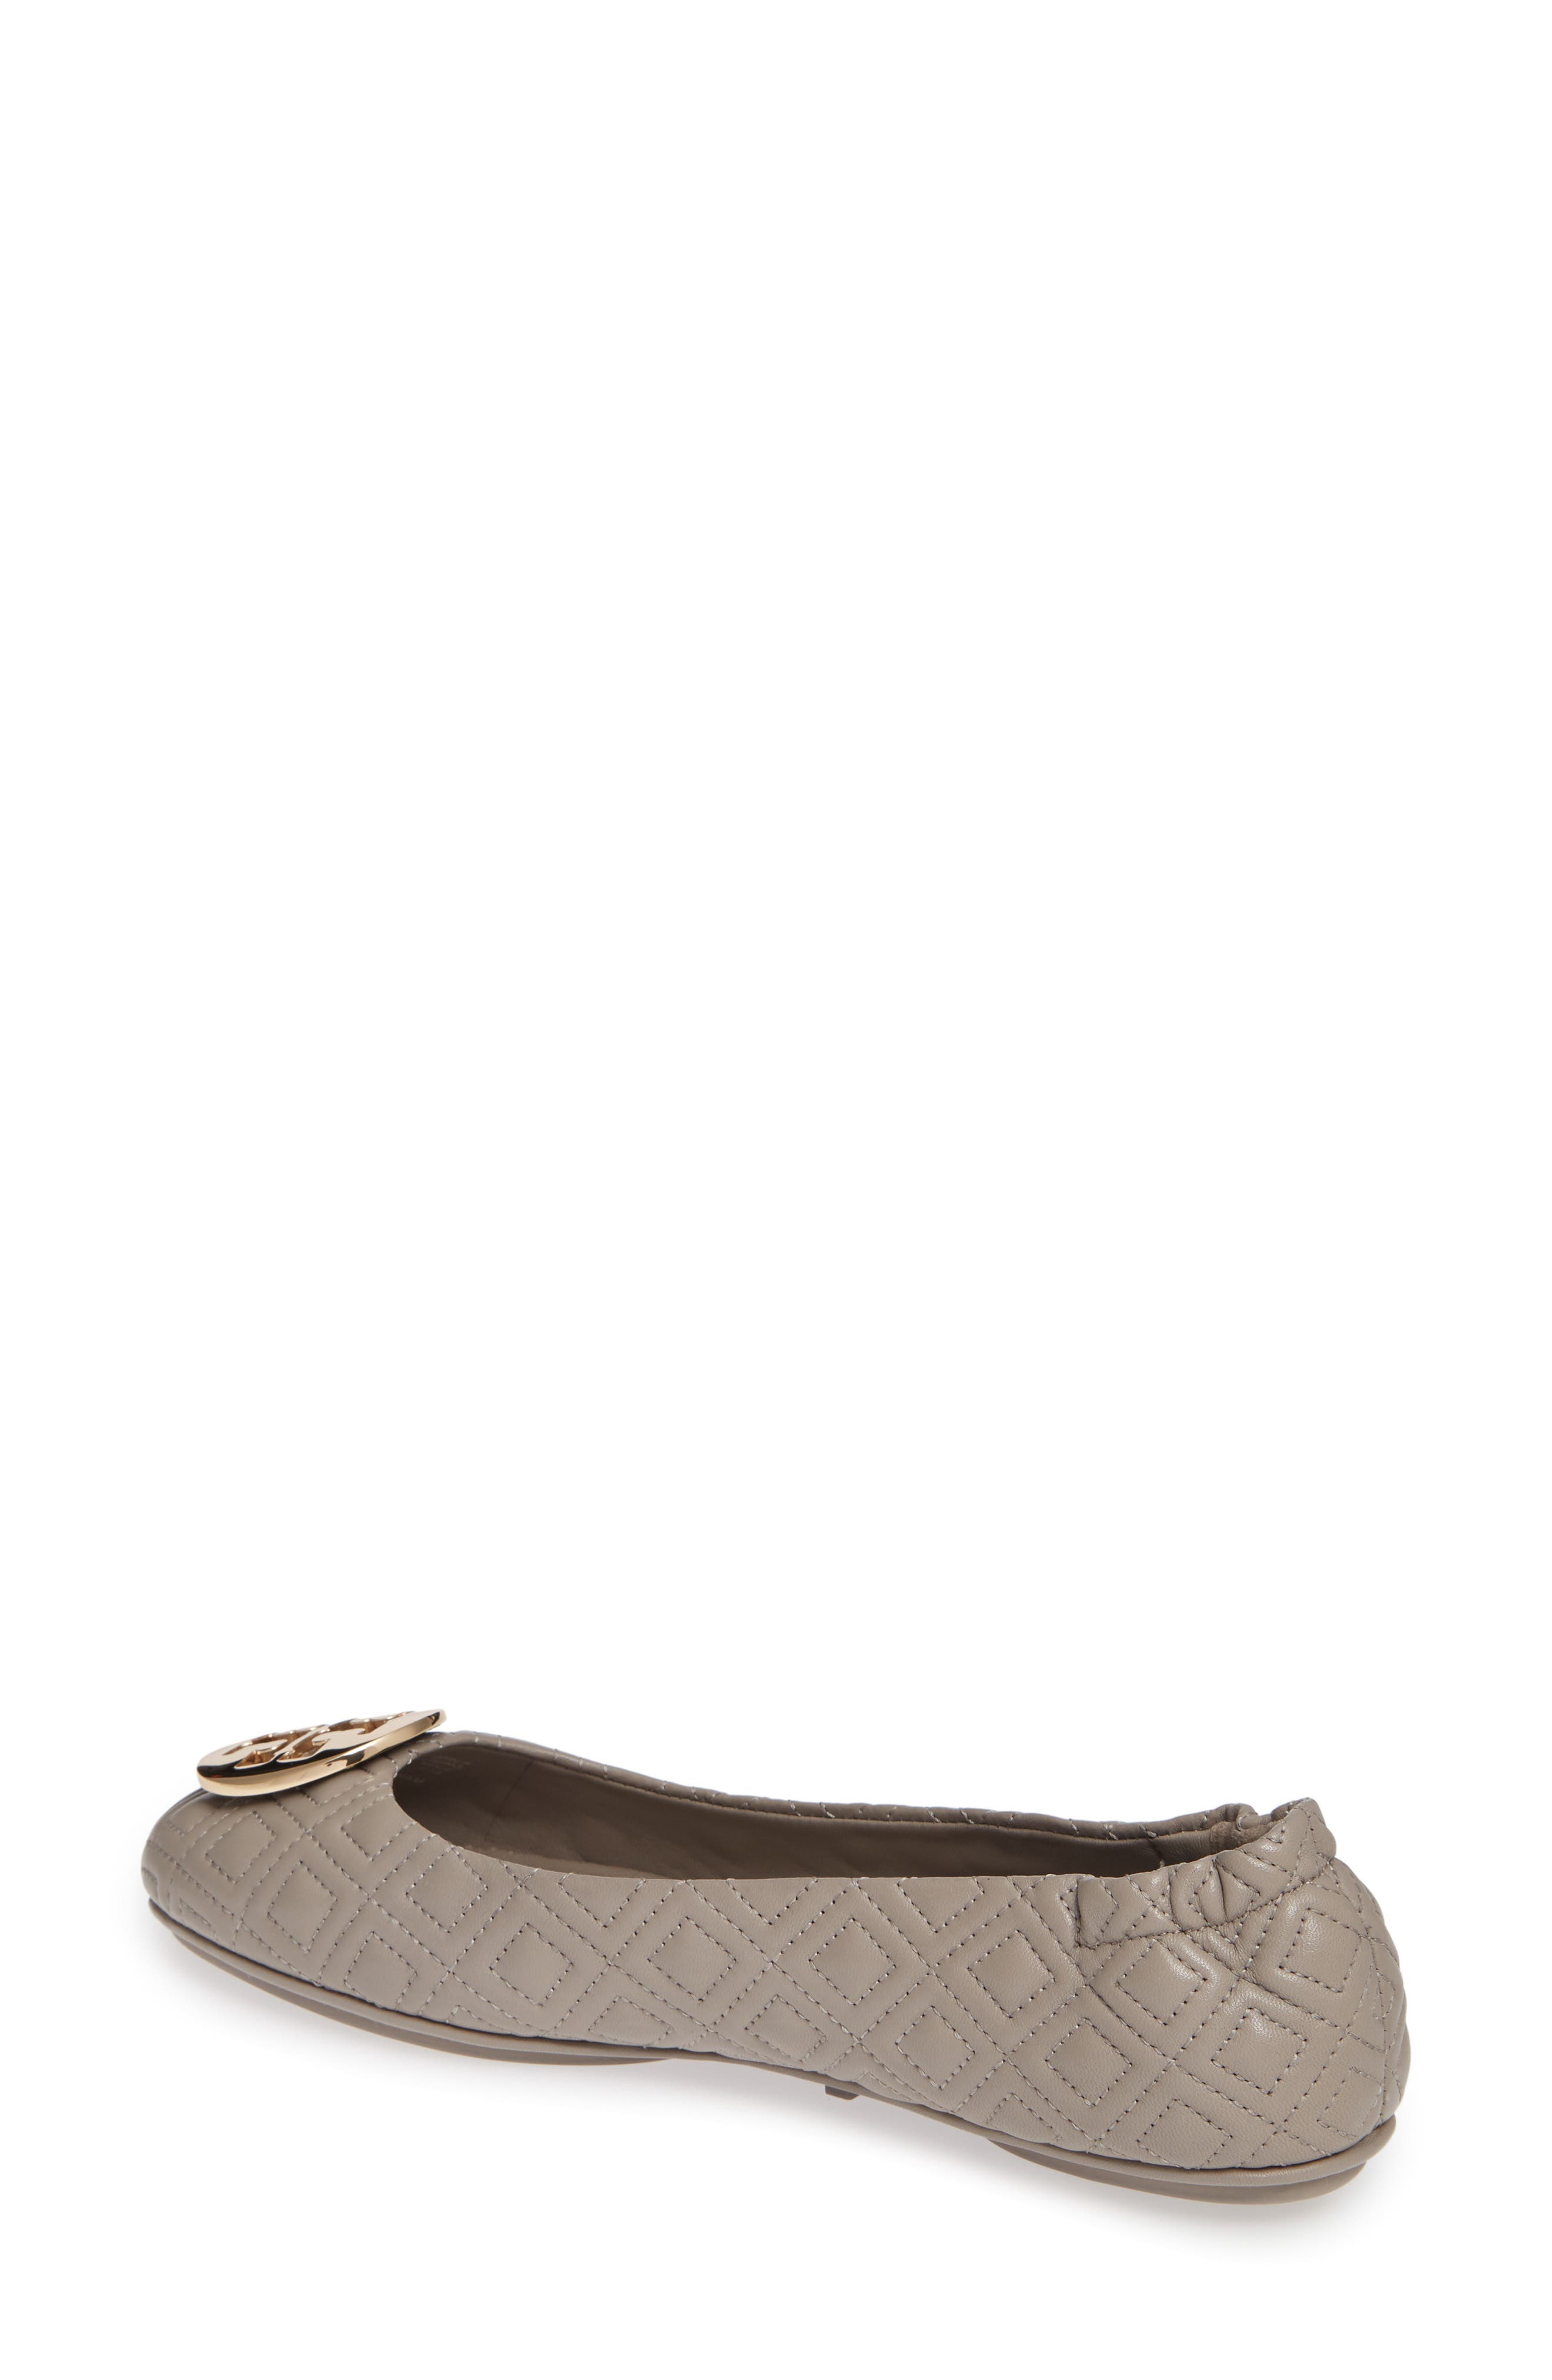 TORY BURCH, Quilted Minnie Flat, Alternate thumbnail 2, color, DUST STORM/ GOLD